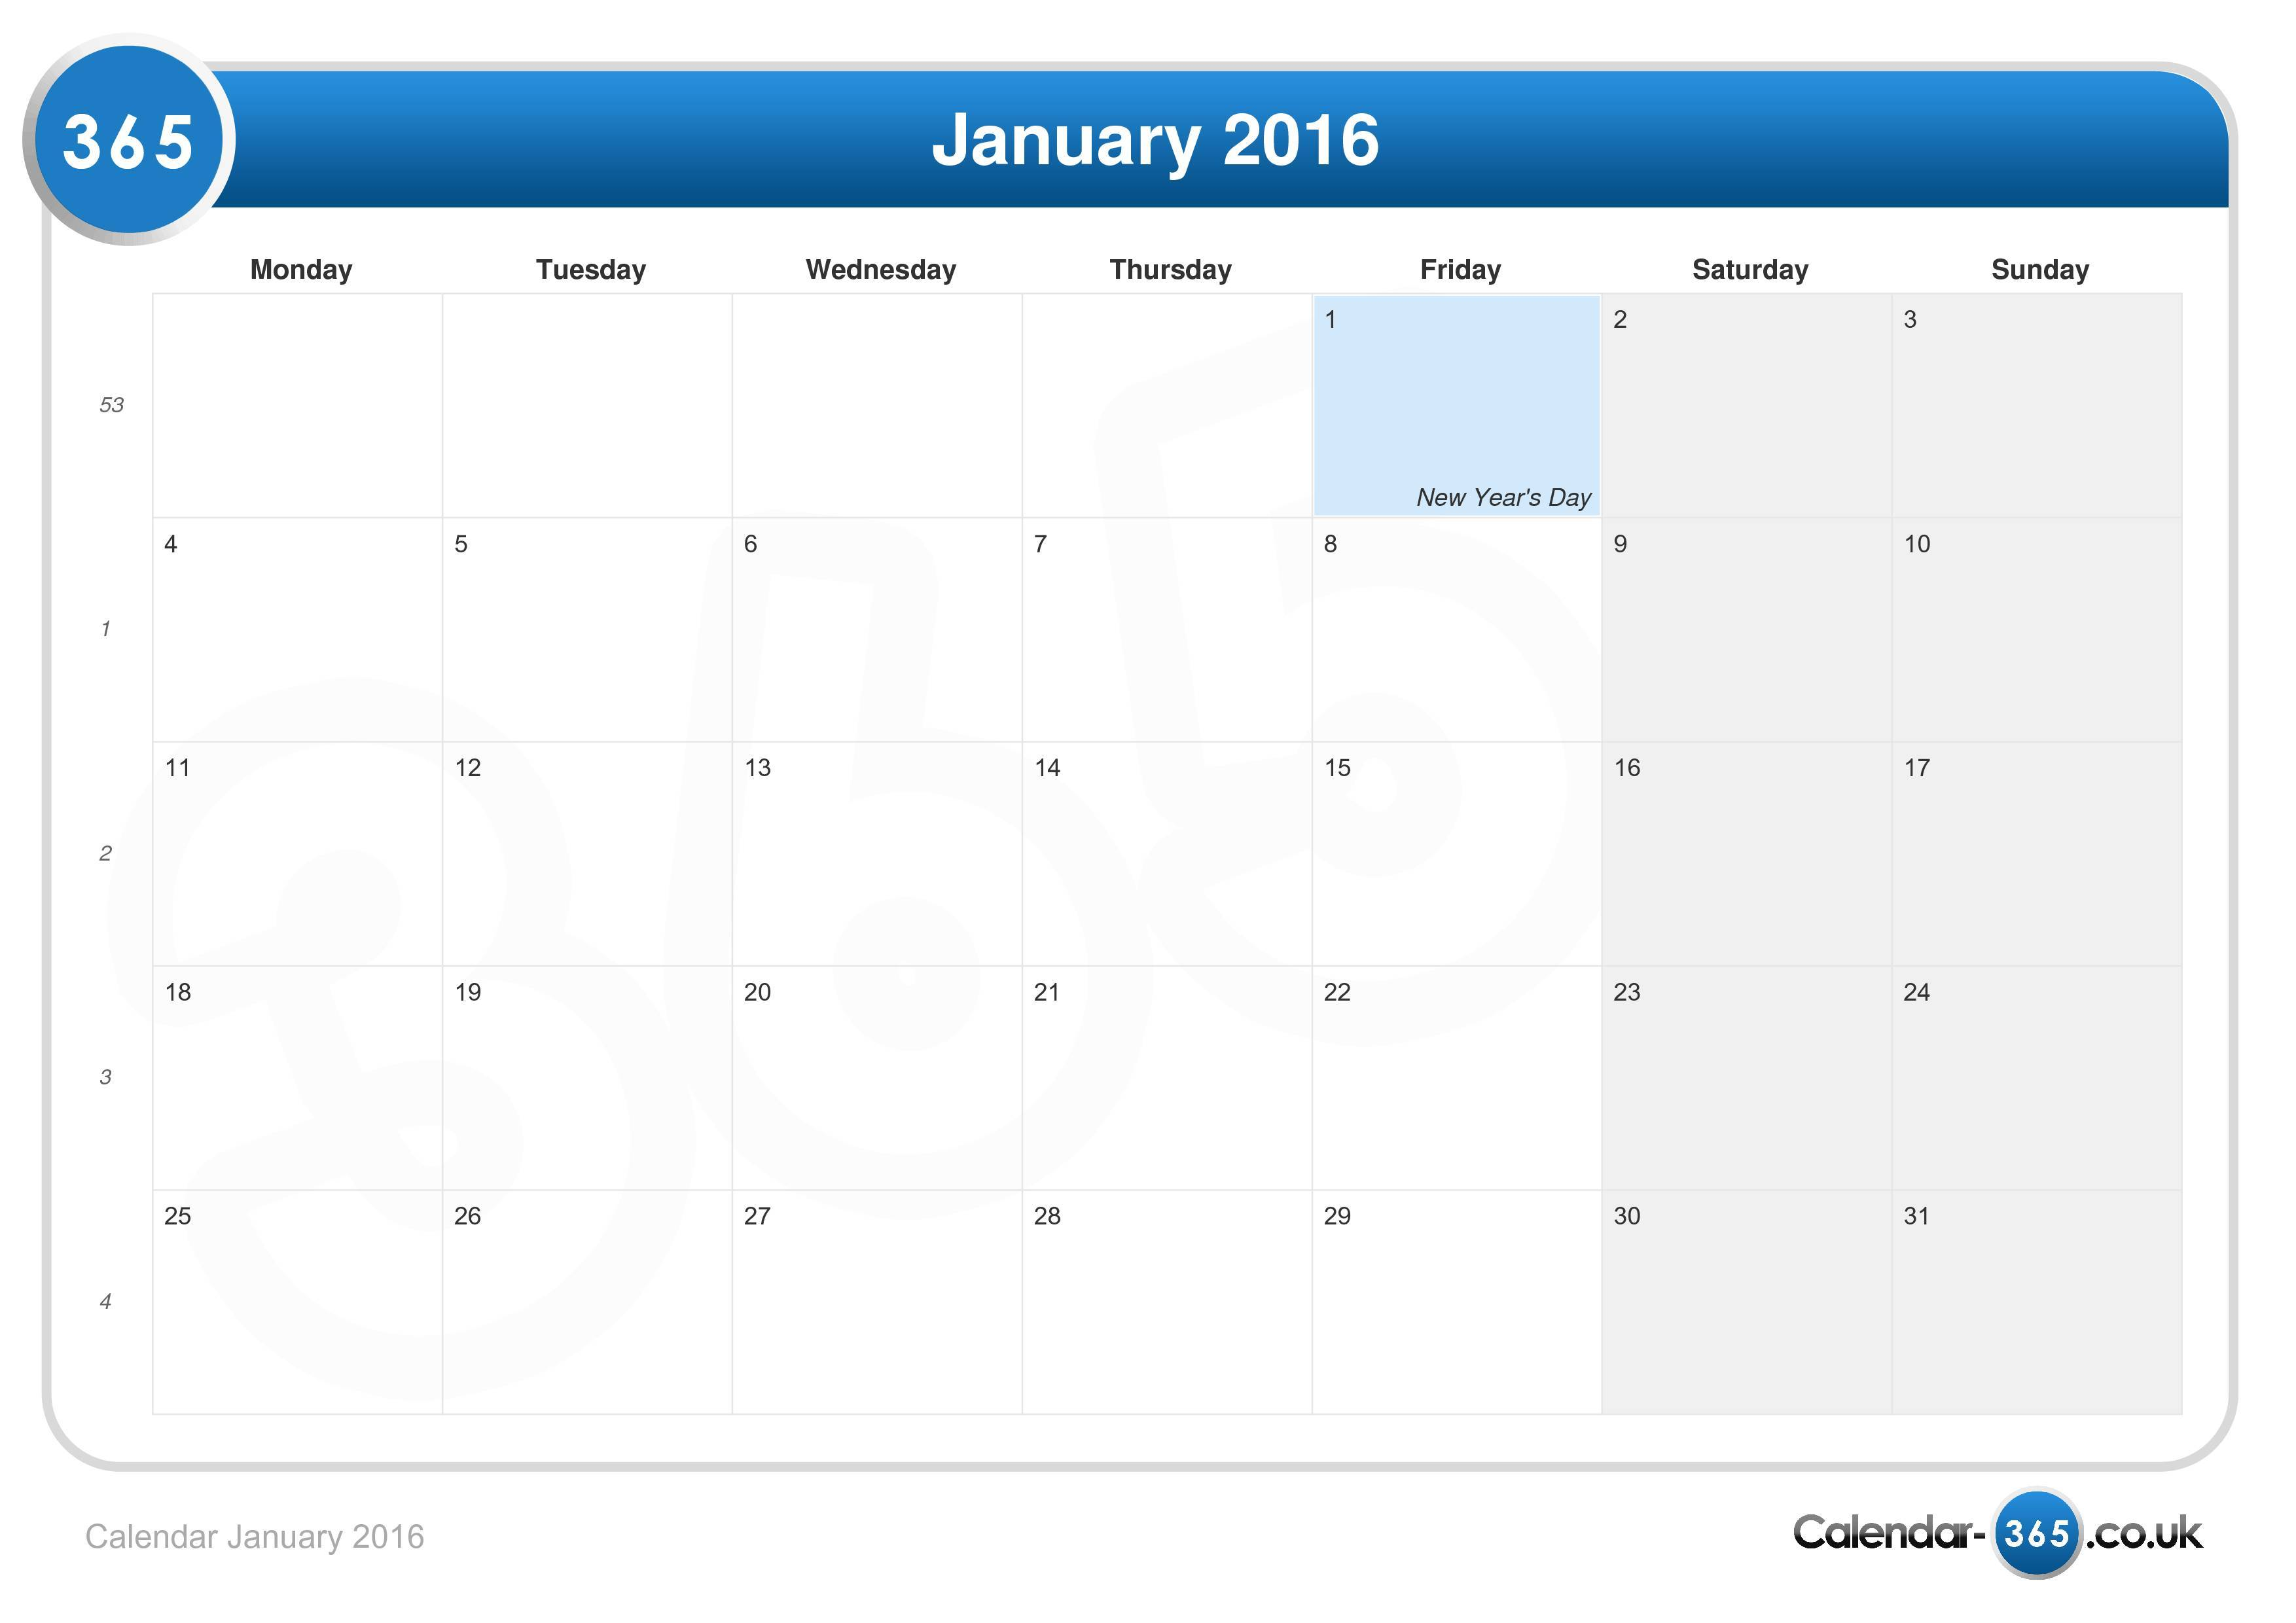 Calendar January 2016. Disney Vacation Planner Template Excel. View ...